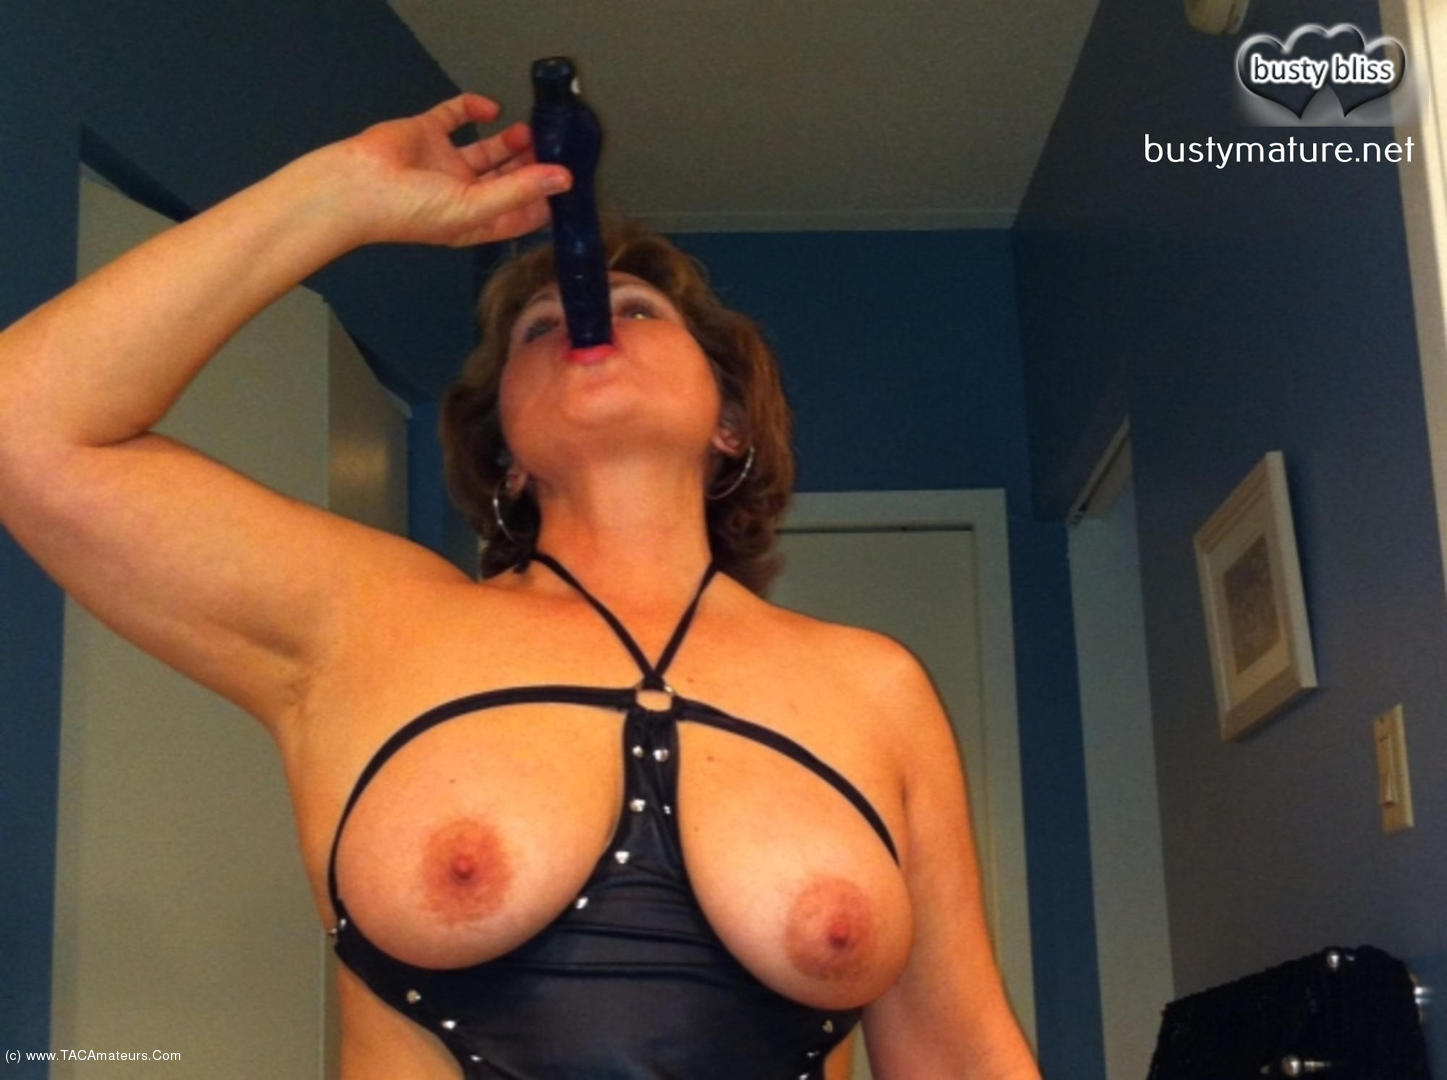 BustyBliss - Have Some Busty Bliss Dicken's Cider Pt1 scene 0